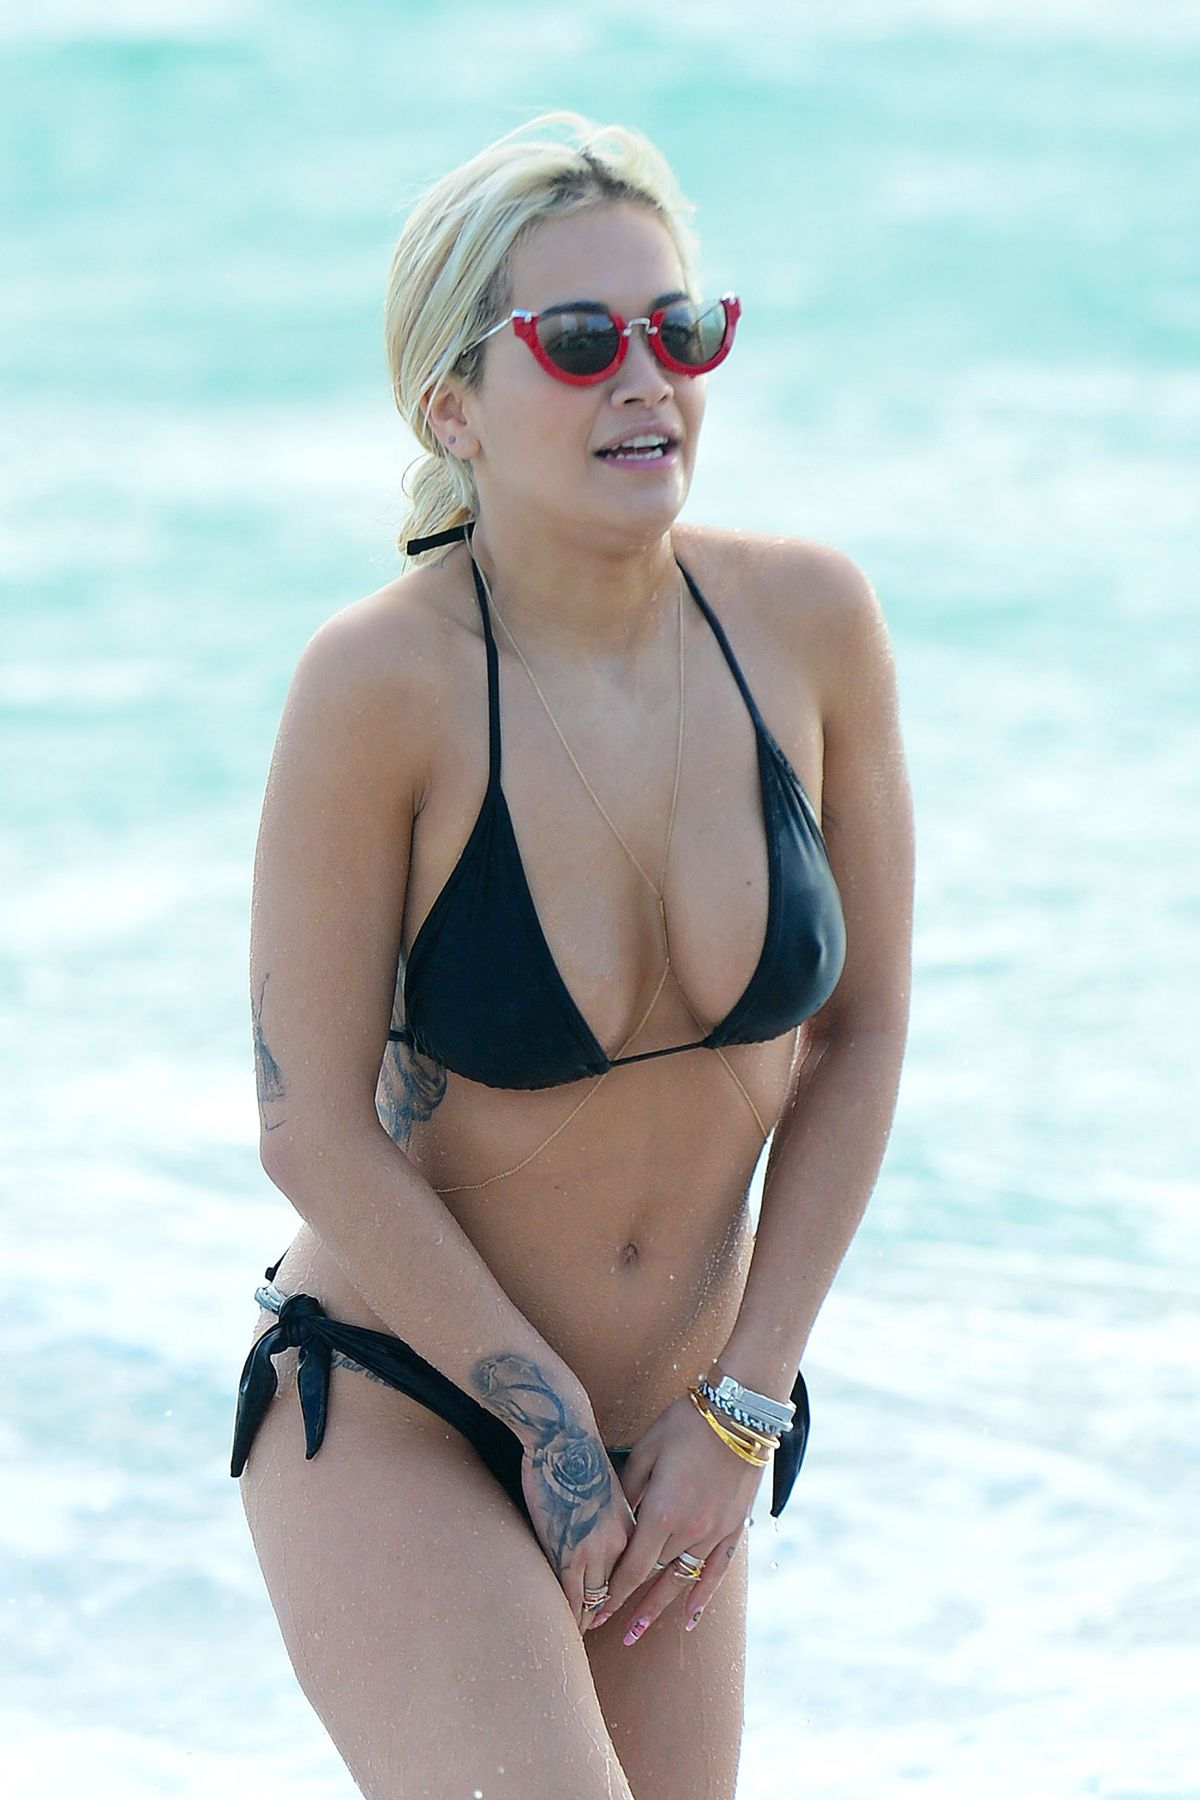 Rita ora pokies photos - 2019 year